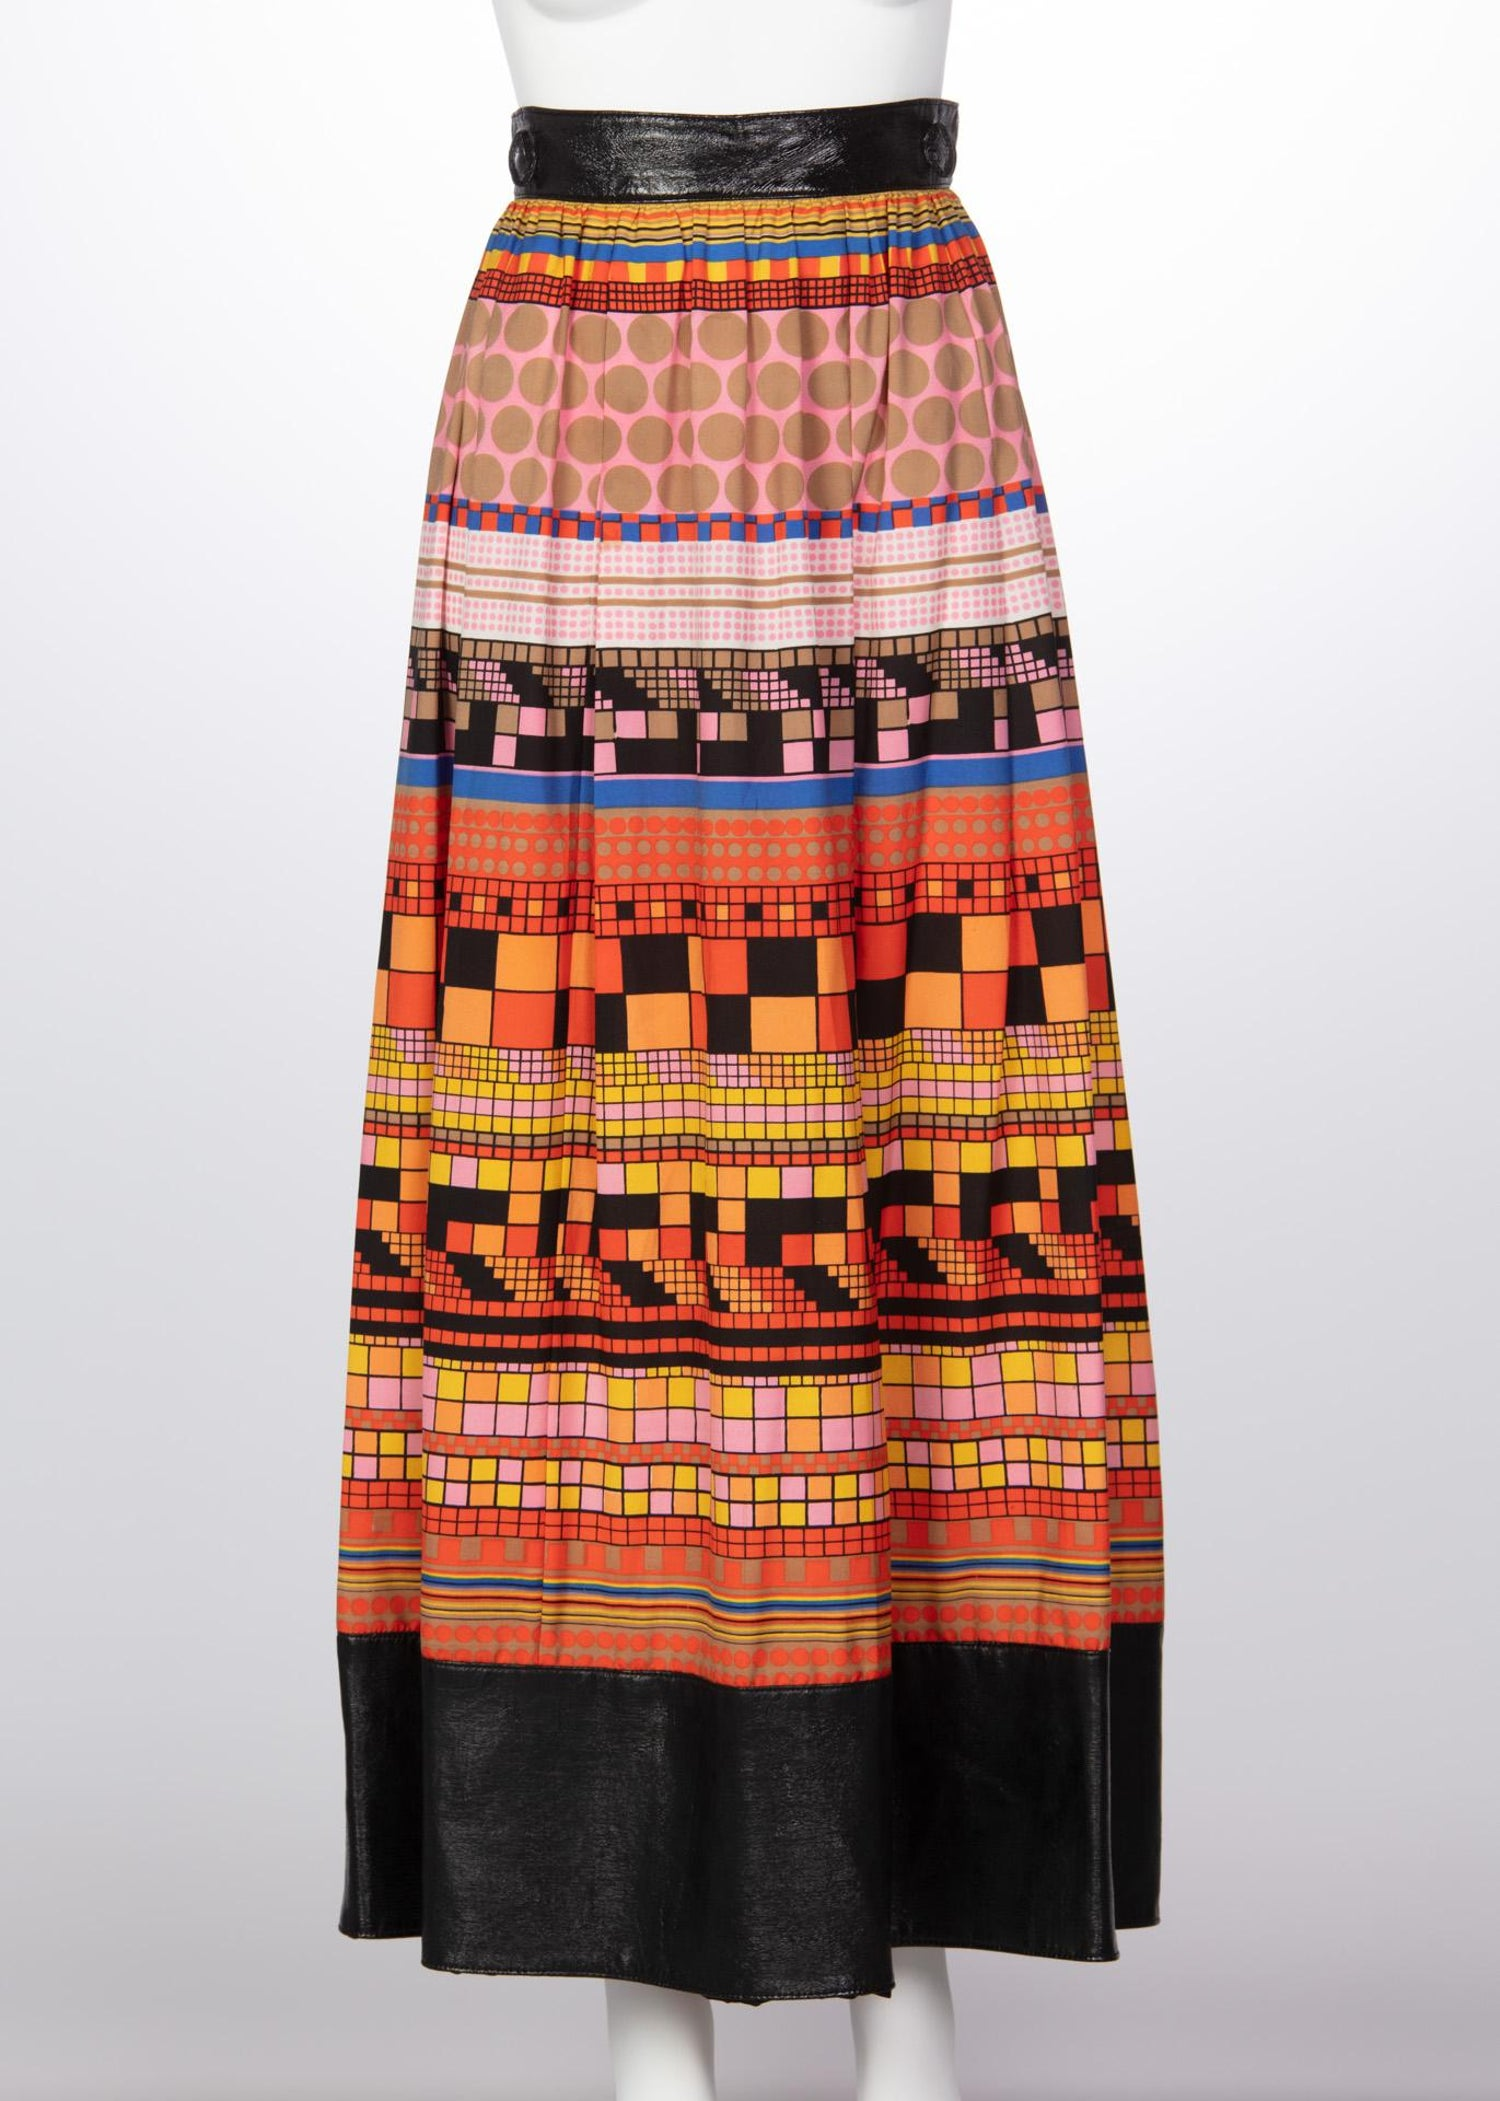 9ddd6ac0a50 1970s Lanvin Multicolored Geometric Print Leather Trim Maxi Skirt For Sale  at 1stdibs